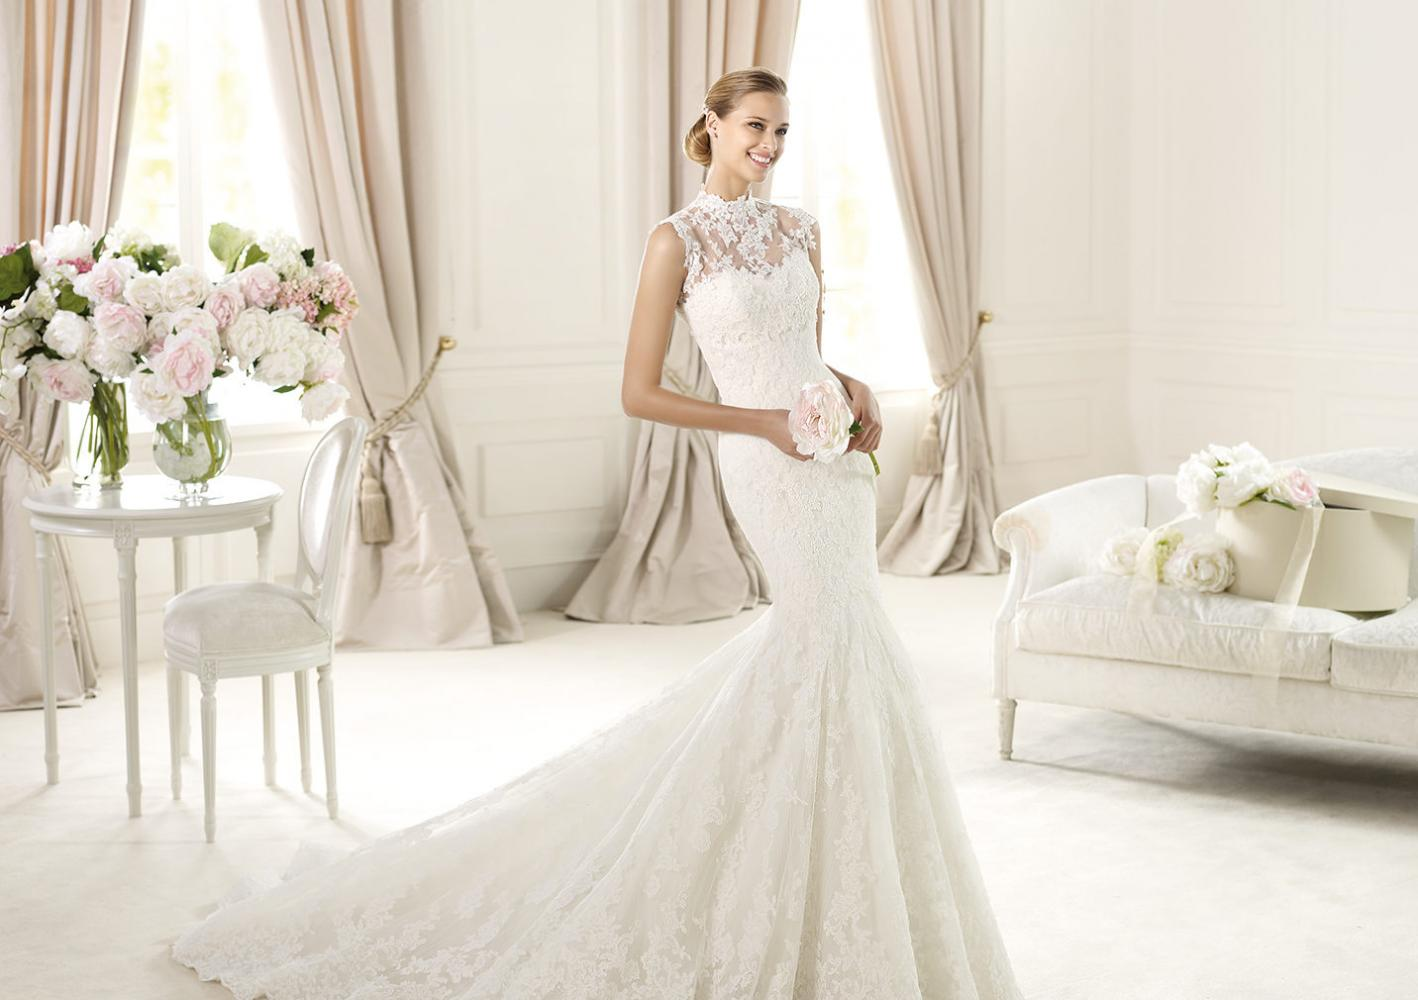 This Beautiful 2 Piece Gown Is Called Ugalde It A Stunning Alencon Lace Fit And Flair With Unique Bodice That Comes Off To Create Gorgeous